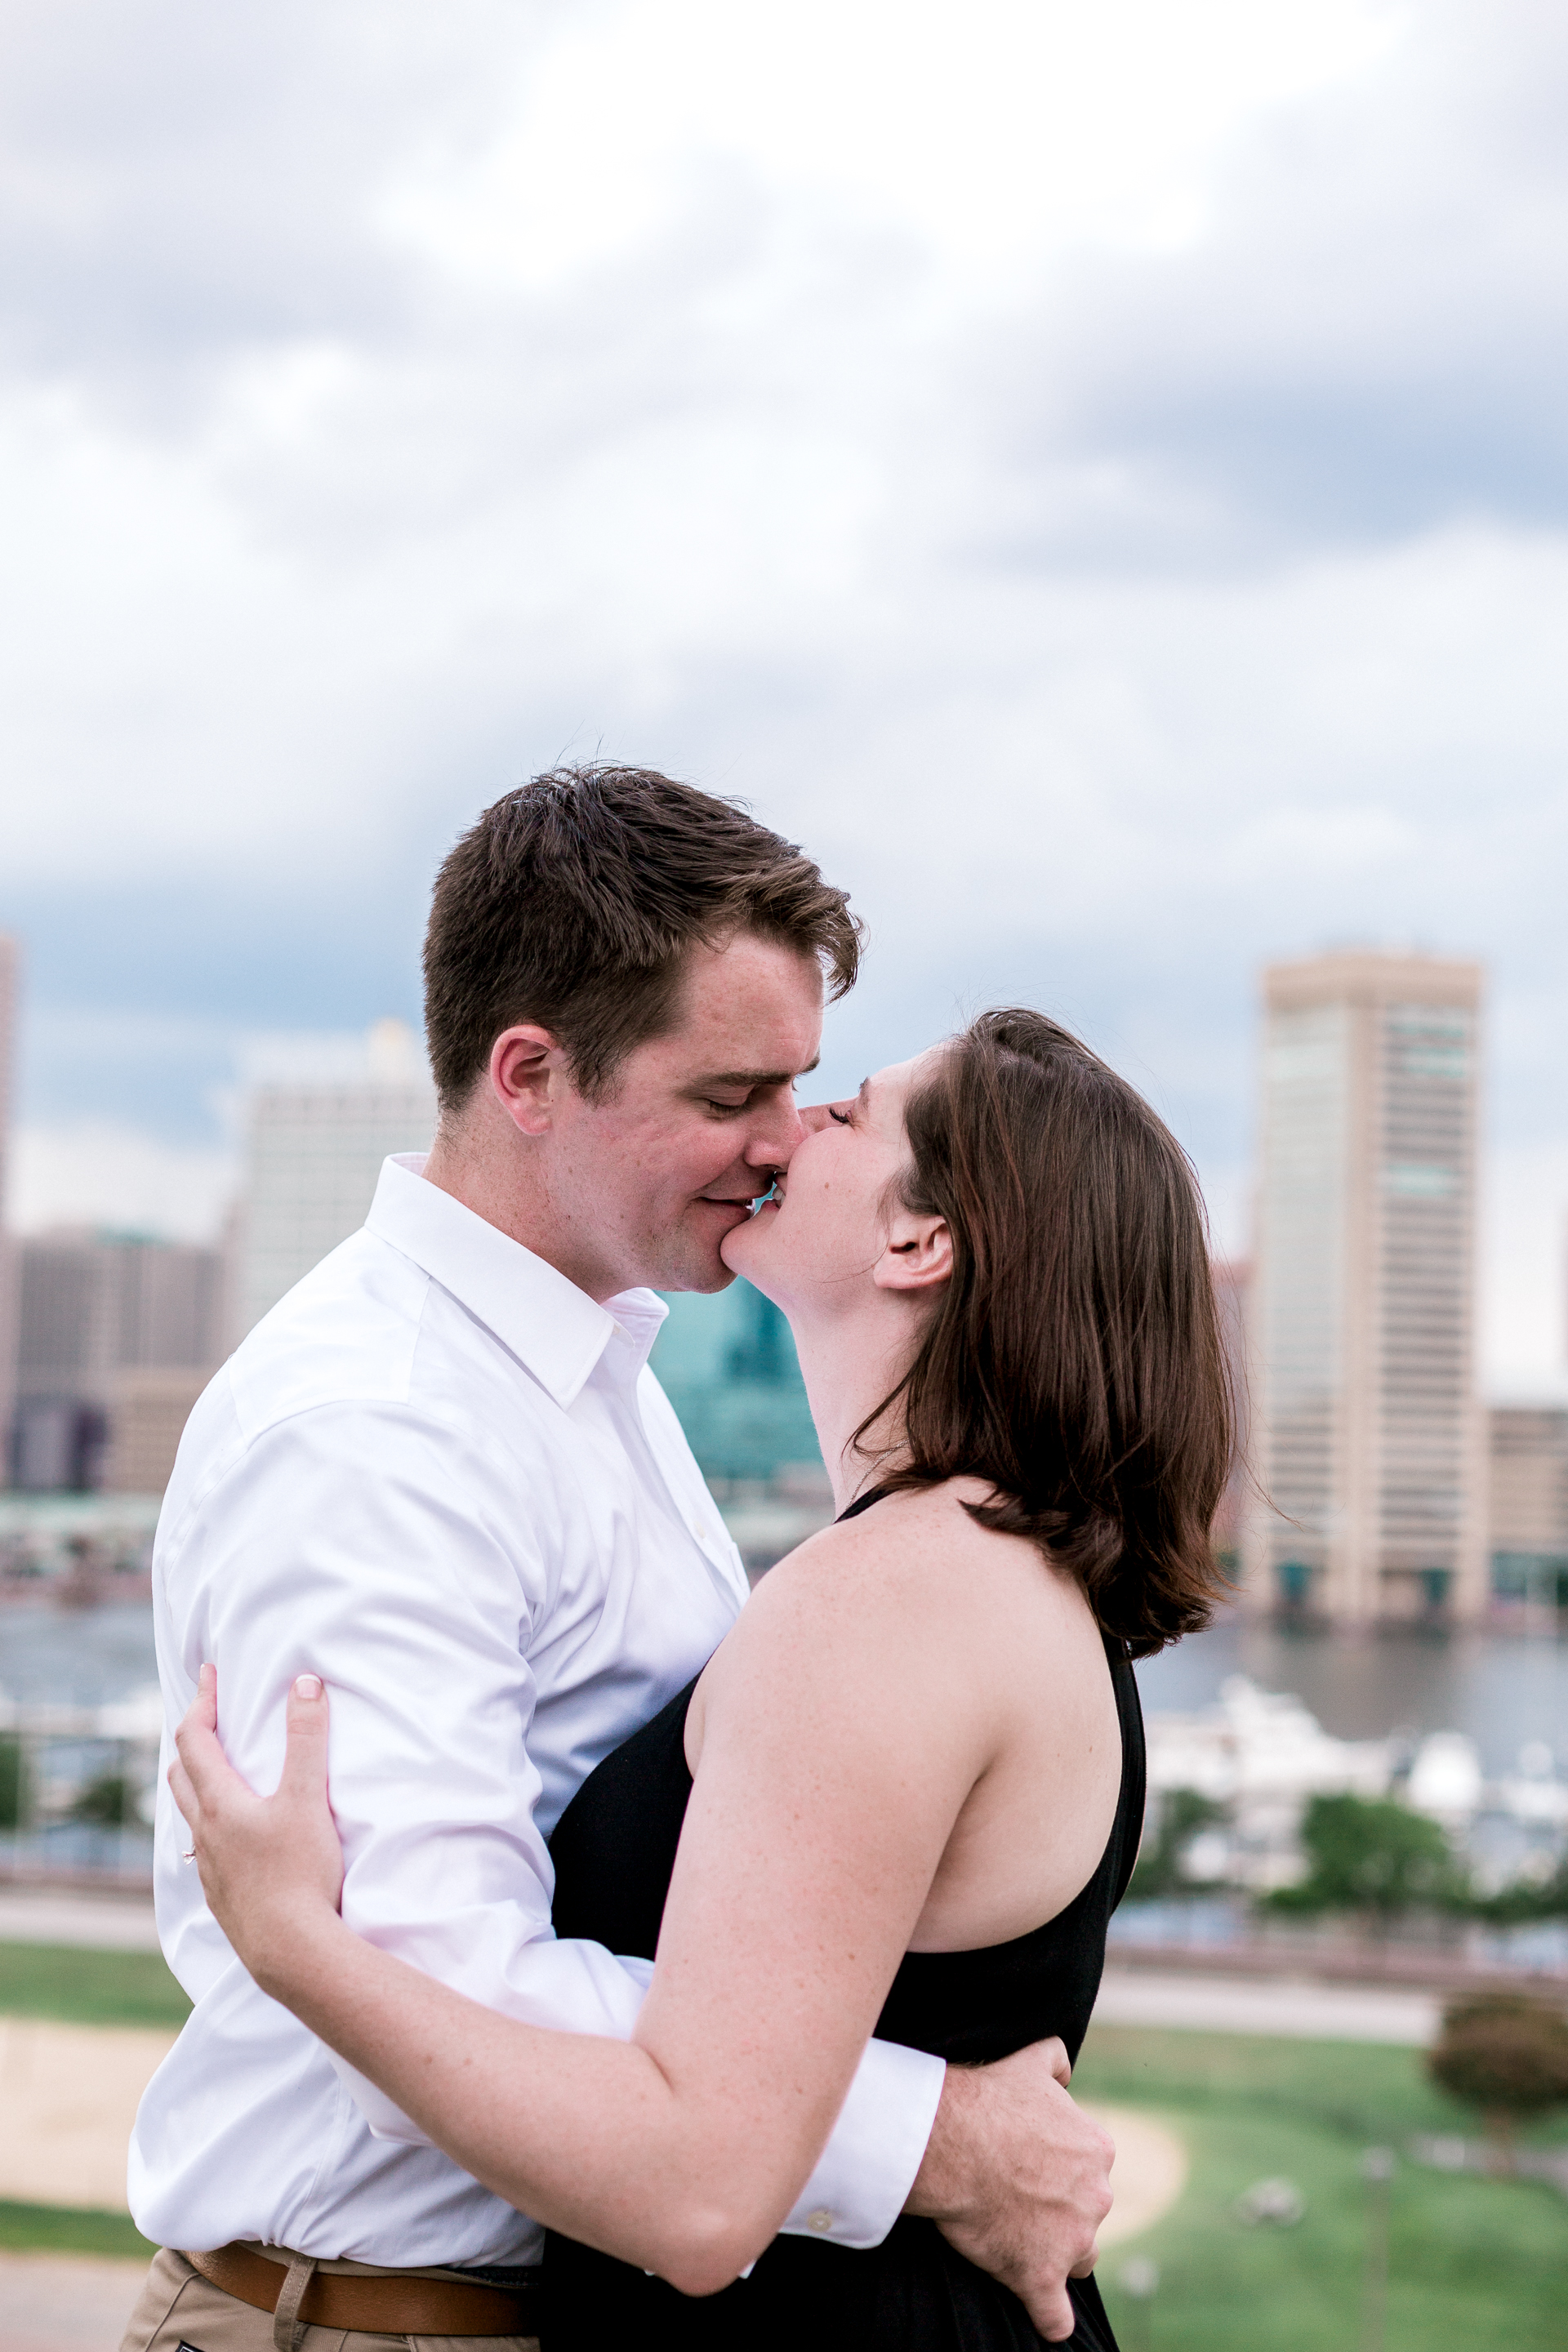 Baltimore Federal Hill Park Stormy Engagement Session Lytle Photo Co (90 of 92).jpg